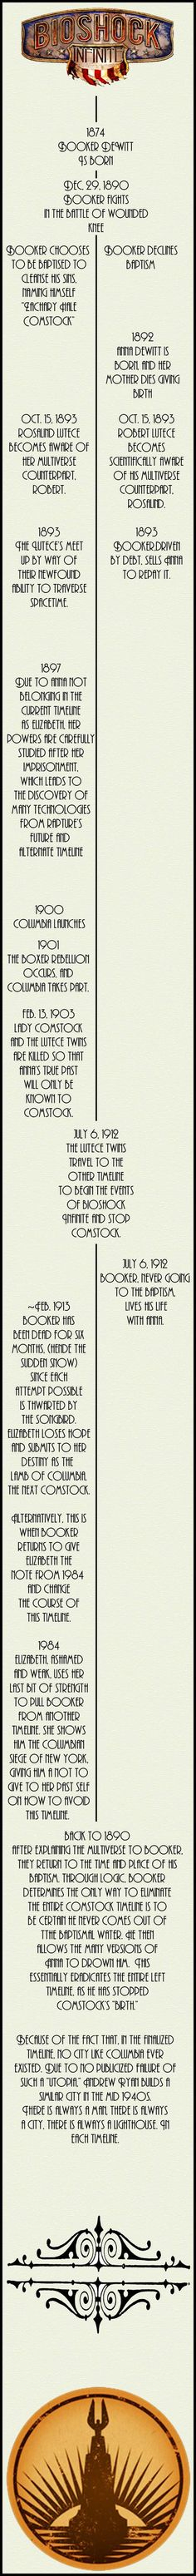 *SPOILERS* Bioshock #Infinite Story Line/ Timeline, you know in case anyone was confused.... booker dewitt and elizabeth